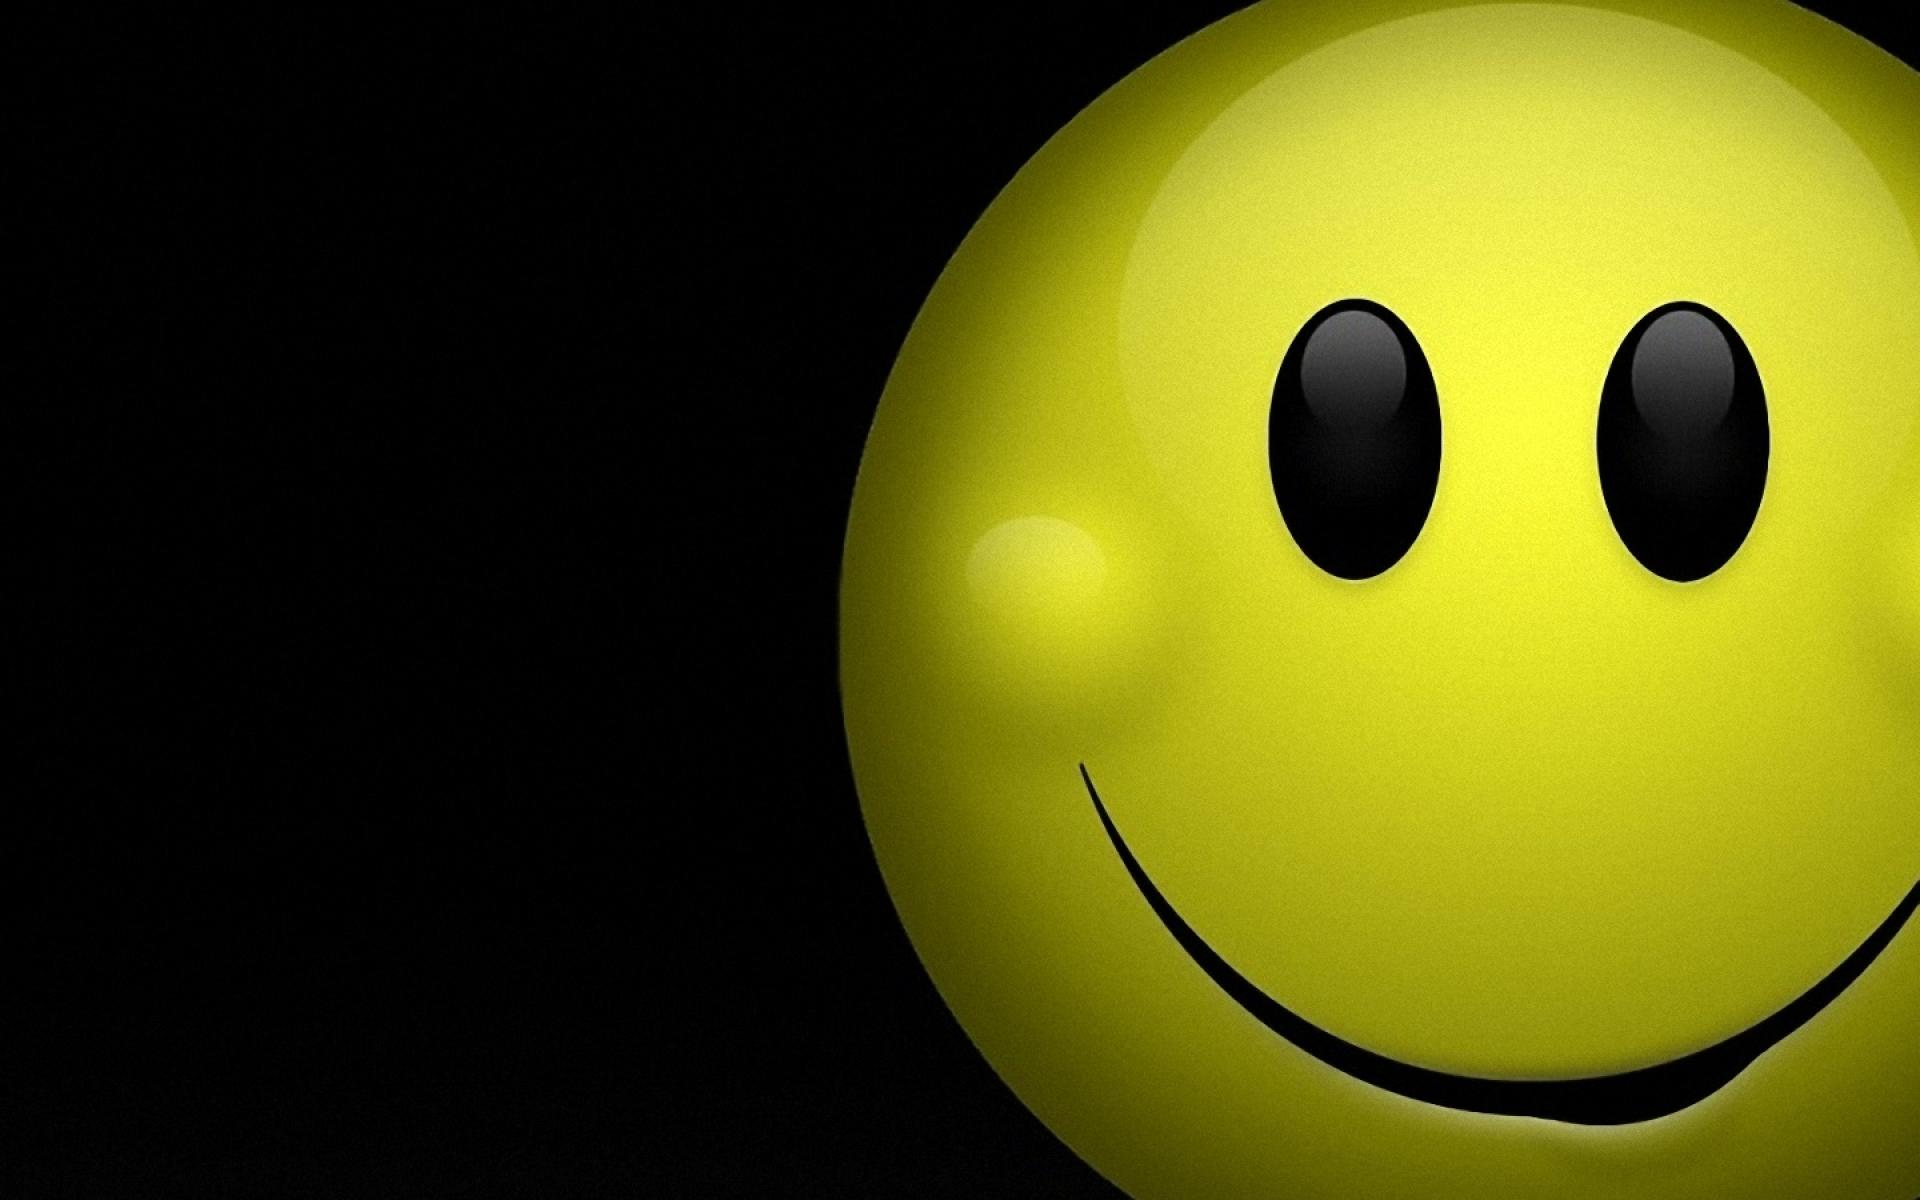 Best Smiley Wallpaper For Android 4939 Wallpaper Wallpaper Screen 1920x1200